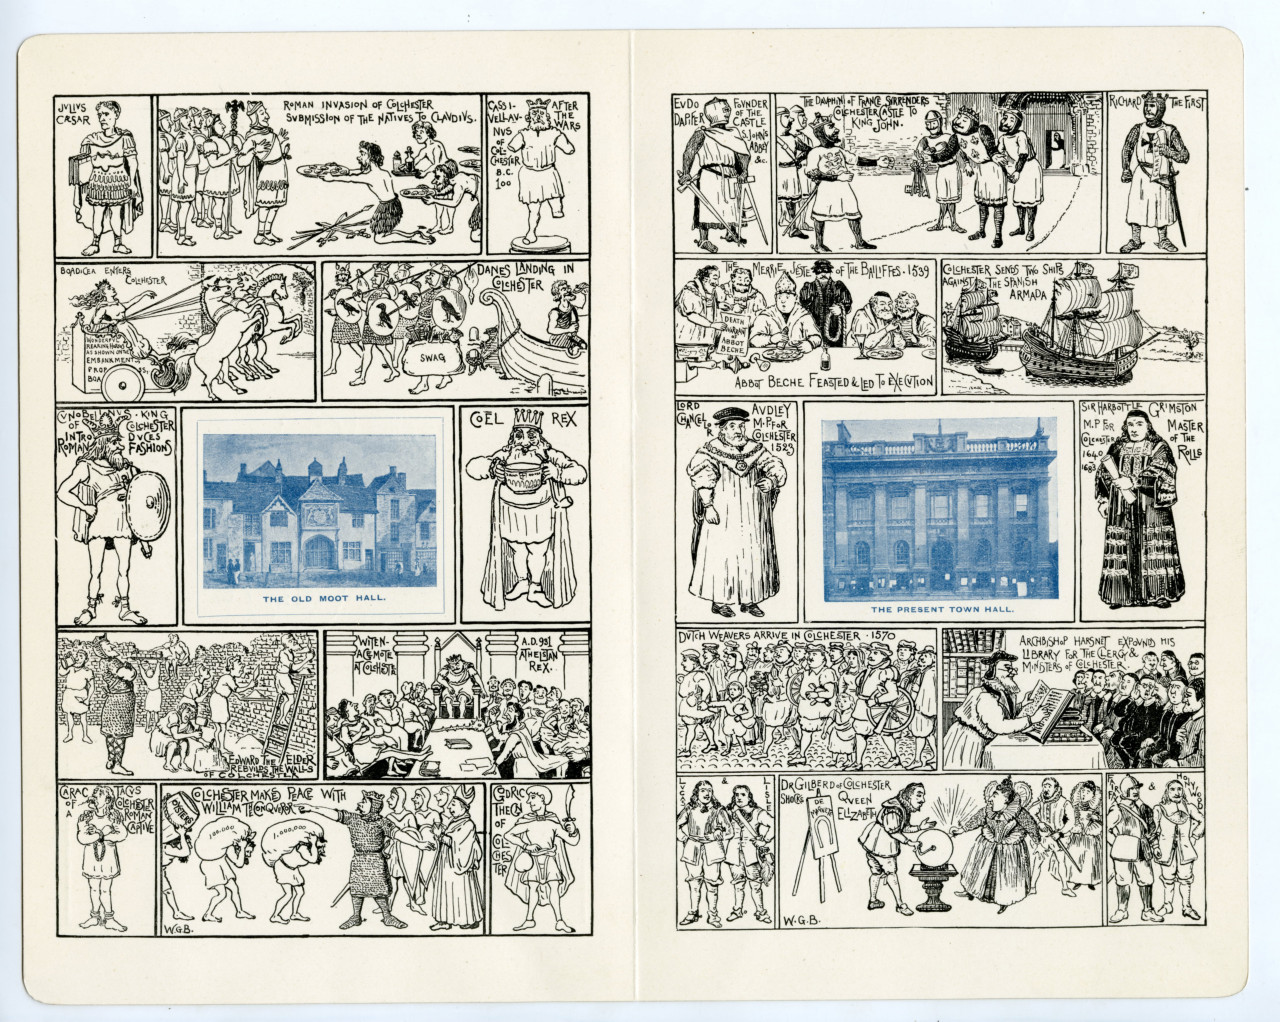 A colour scan of the programme for the 1898 Colchester Oyster Feast. The scan show a double page spread with illustrated boxes like a comic book. The drawings are black line drawings, and in the centre of each page is a blue tinted illustration of different buildings